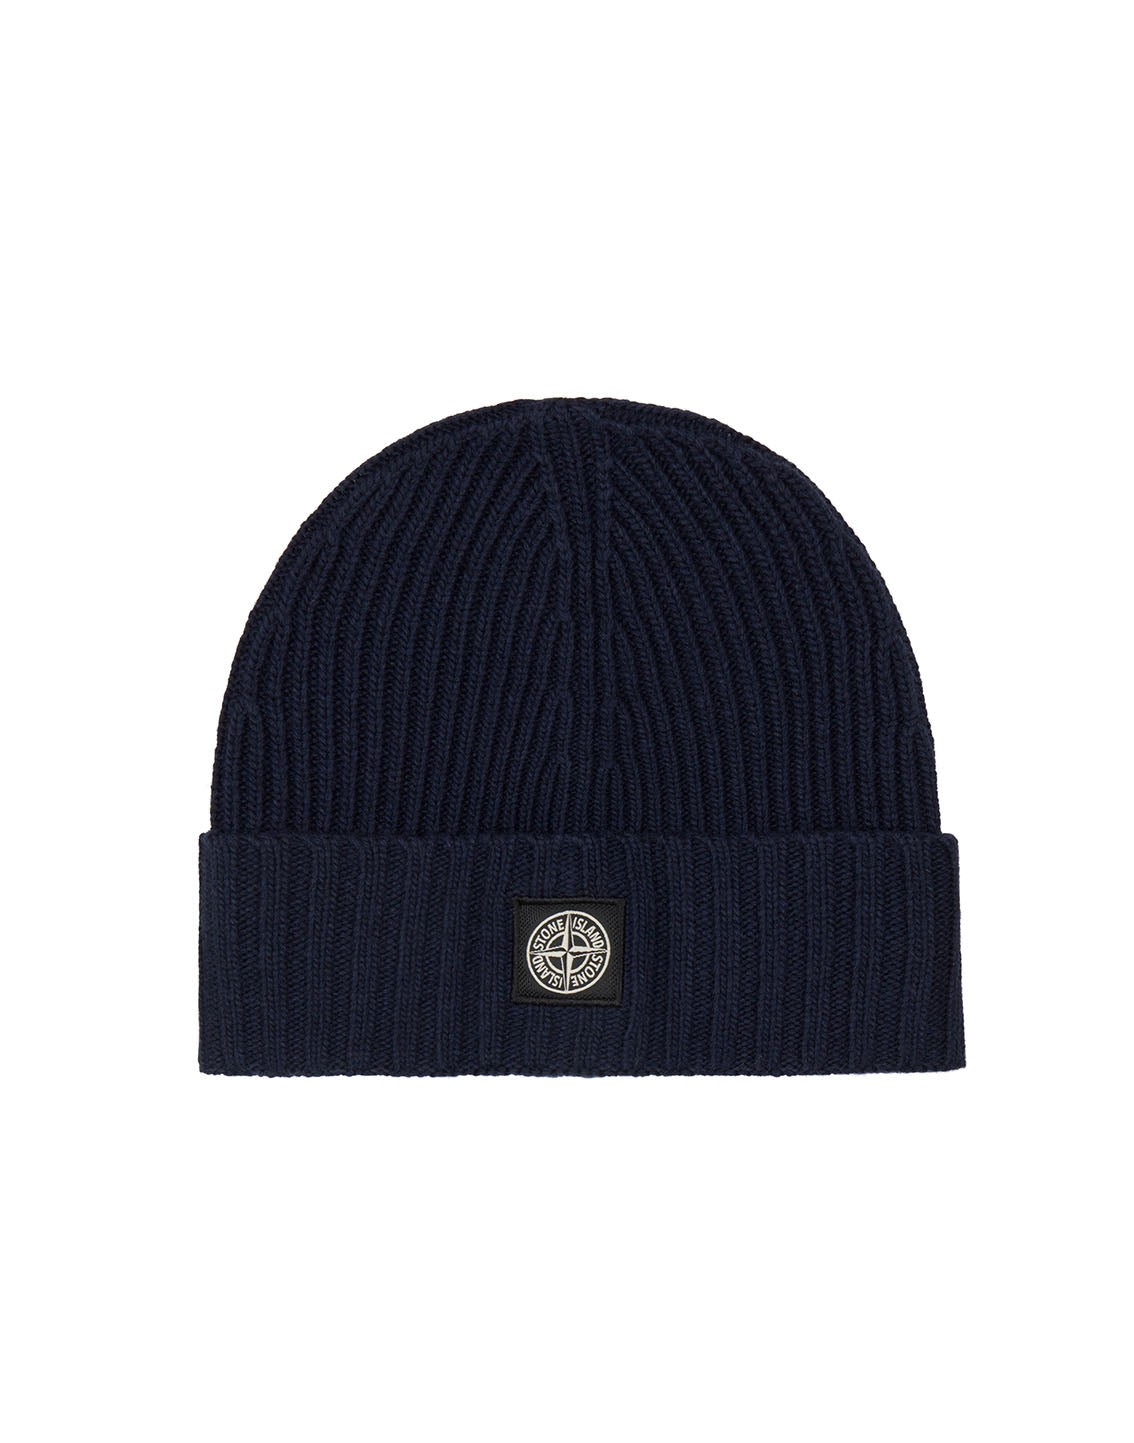 N03A6 Ribbed Wool Hat in Navy Blue